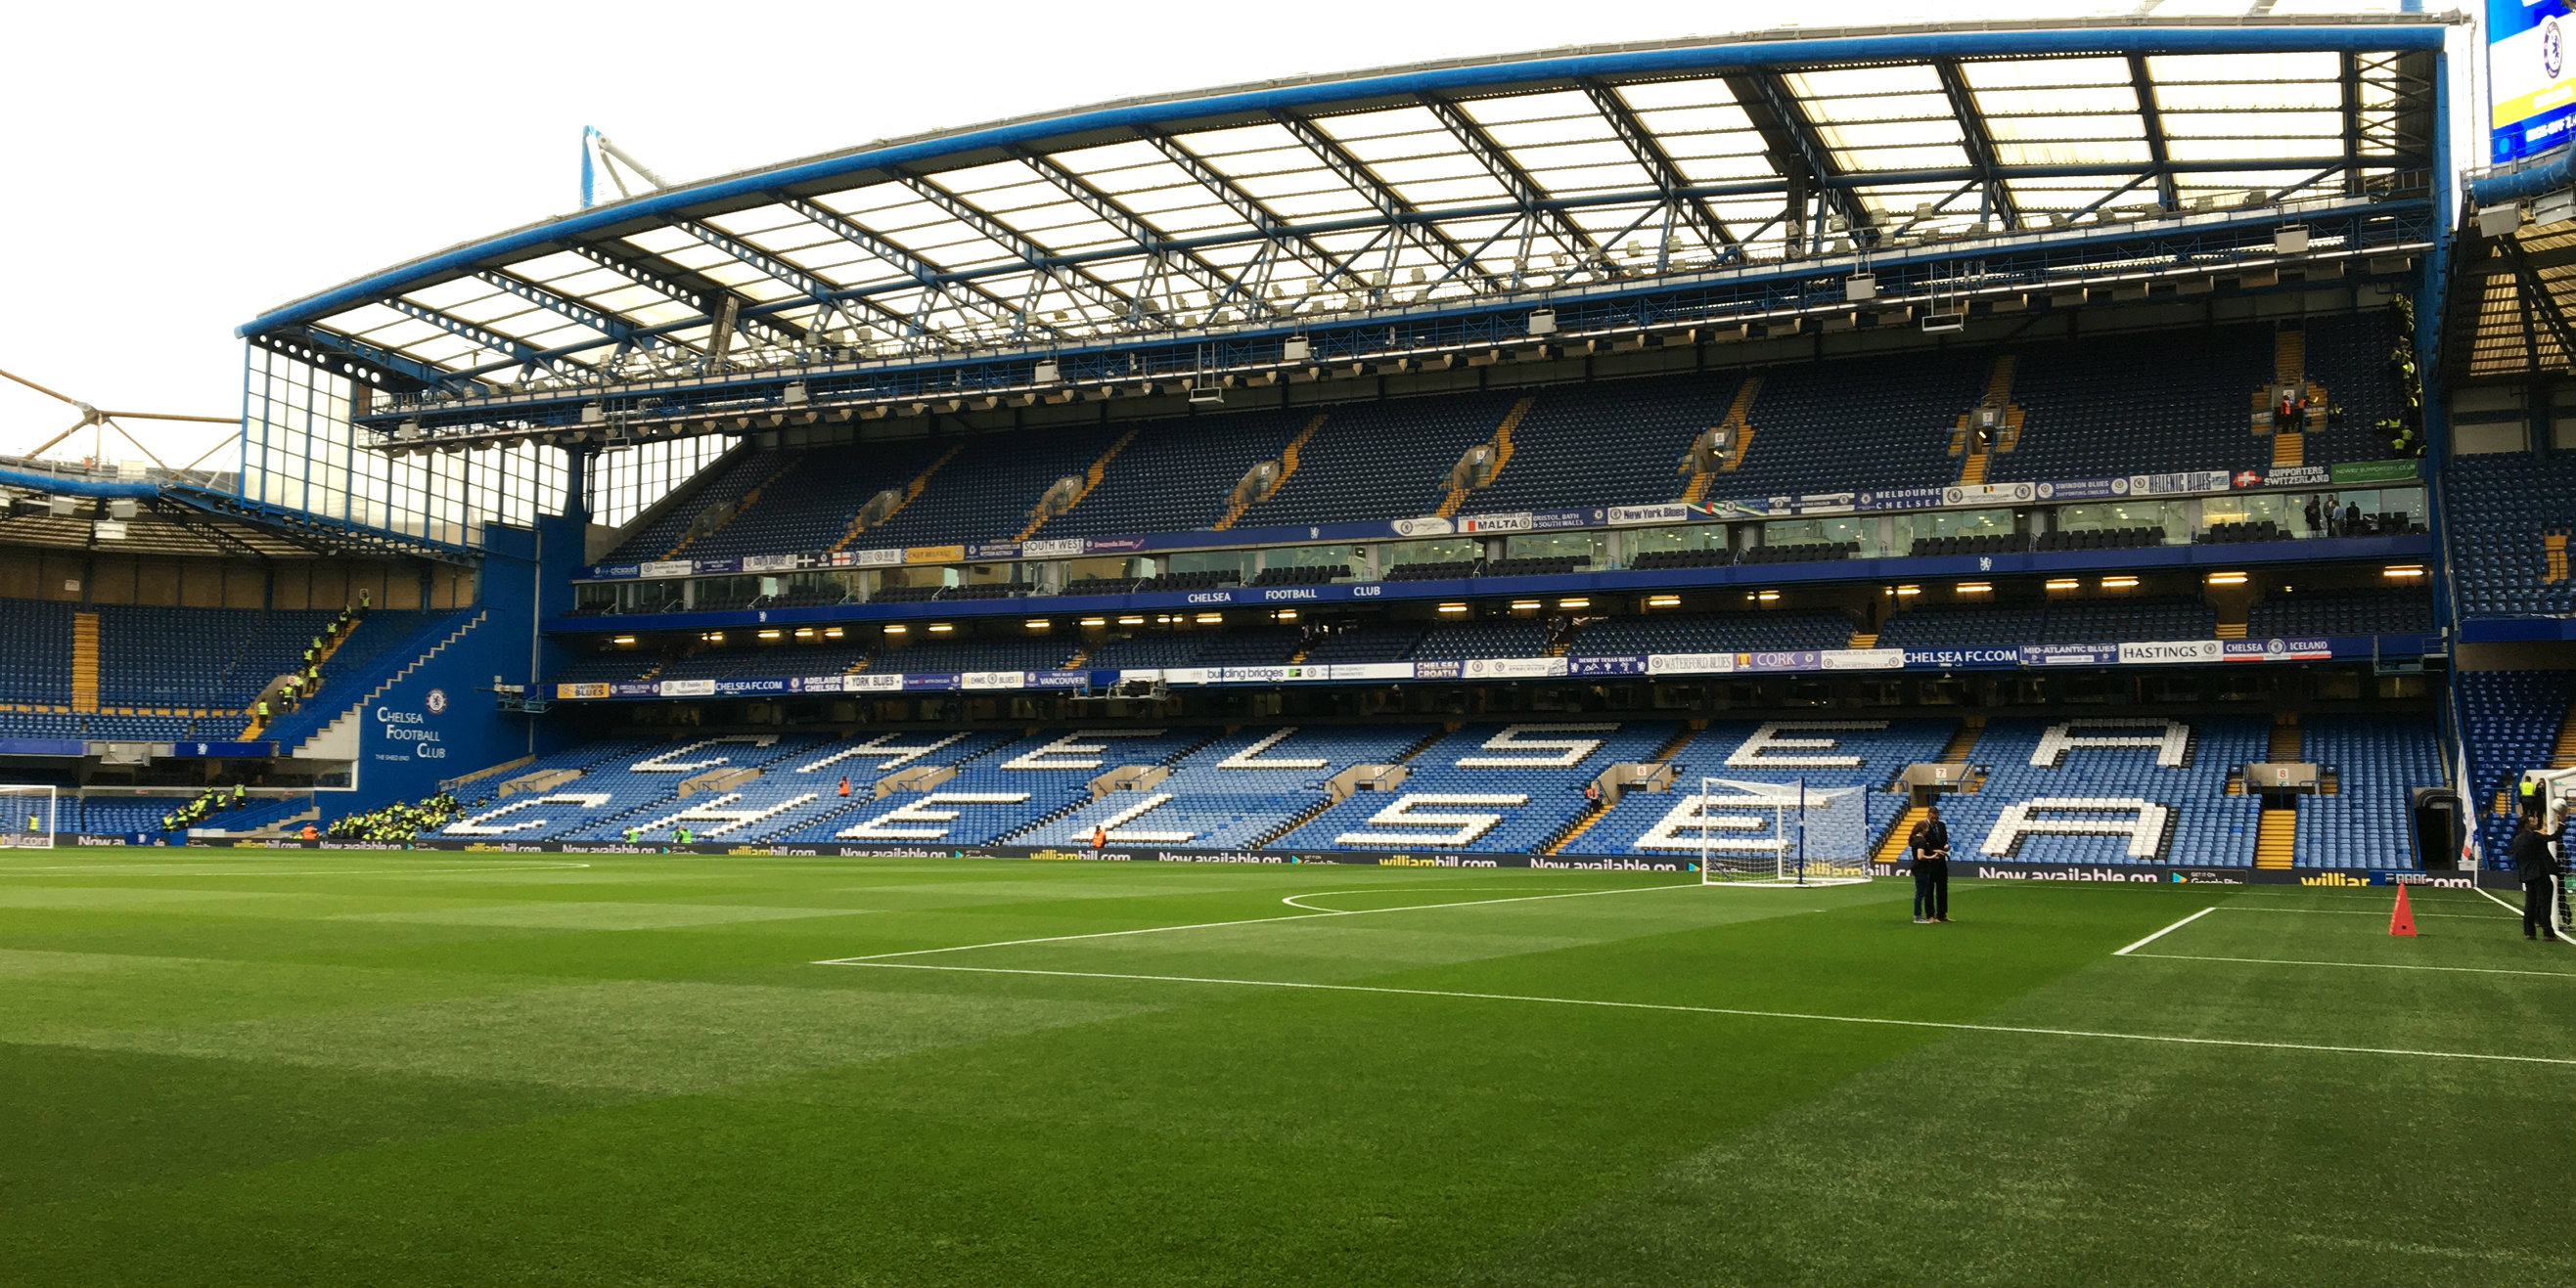 Chelsea v Watford line-ups: Blues duo fit, change in defence, youngster on bench, Watford man starts